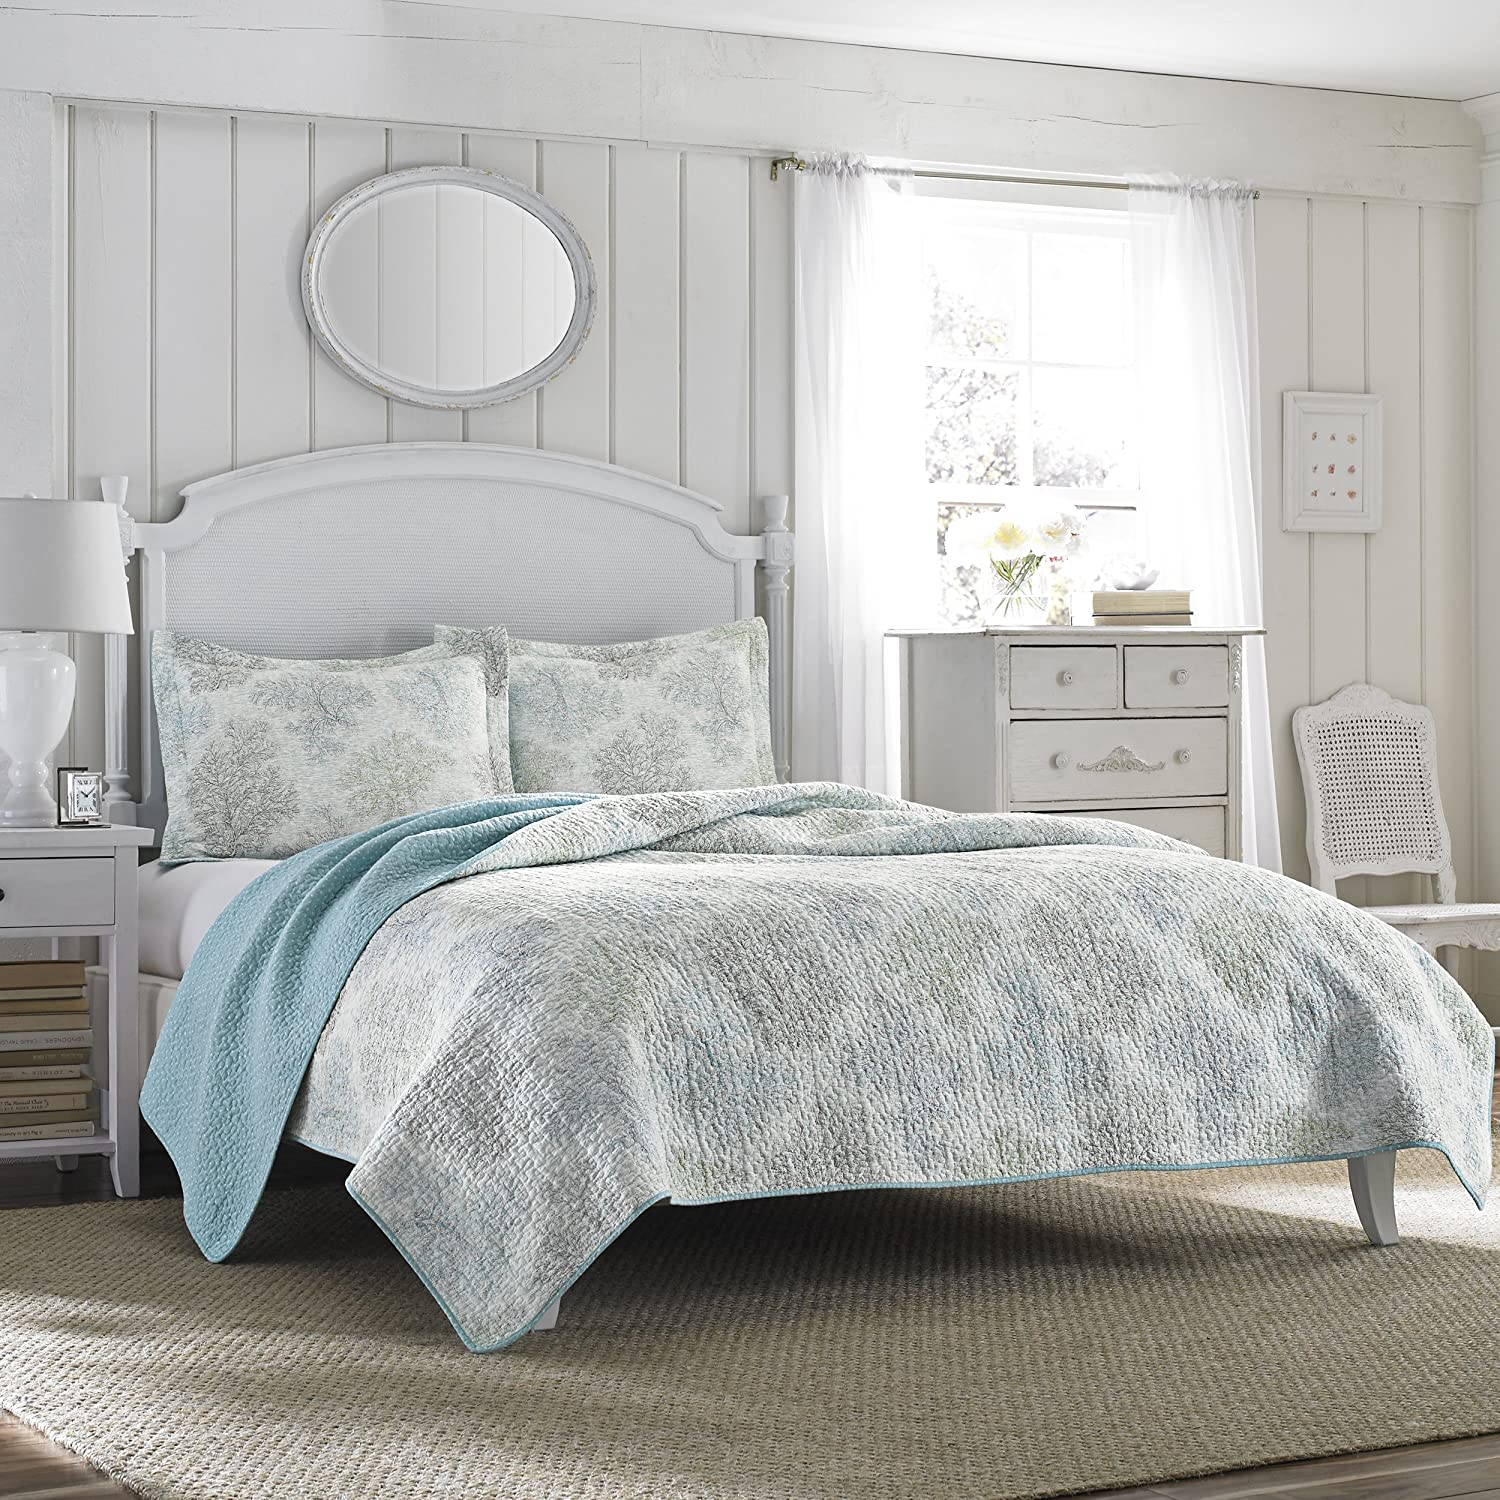 Laura Ashley Saltwater Reversible Quilt Set, Twin